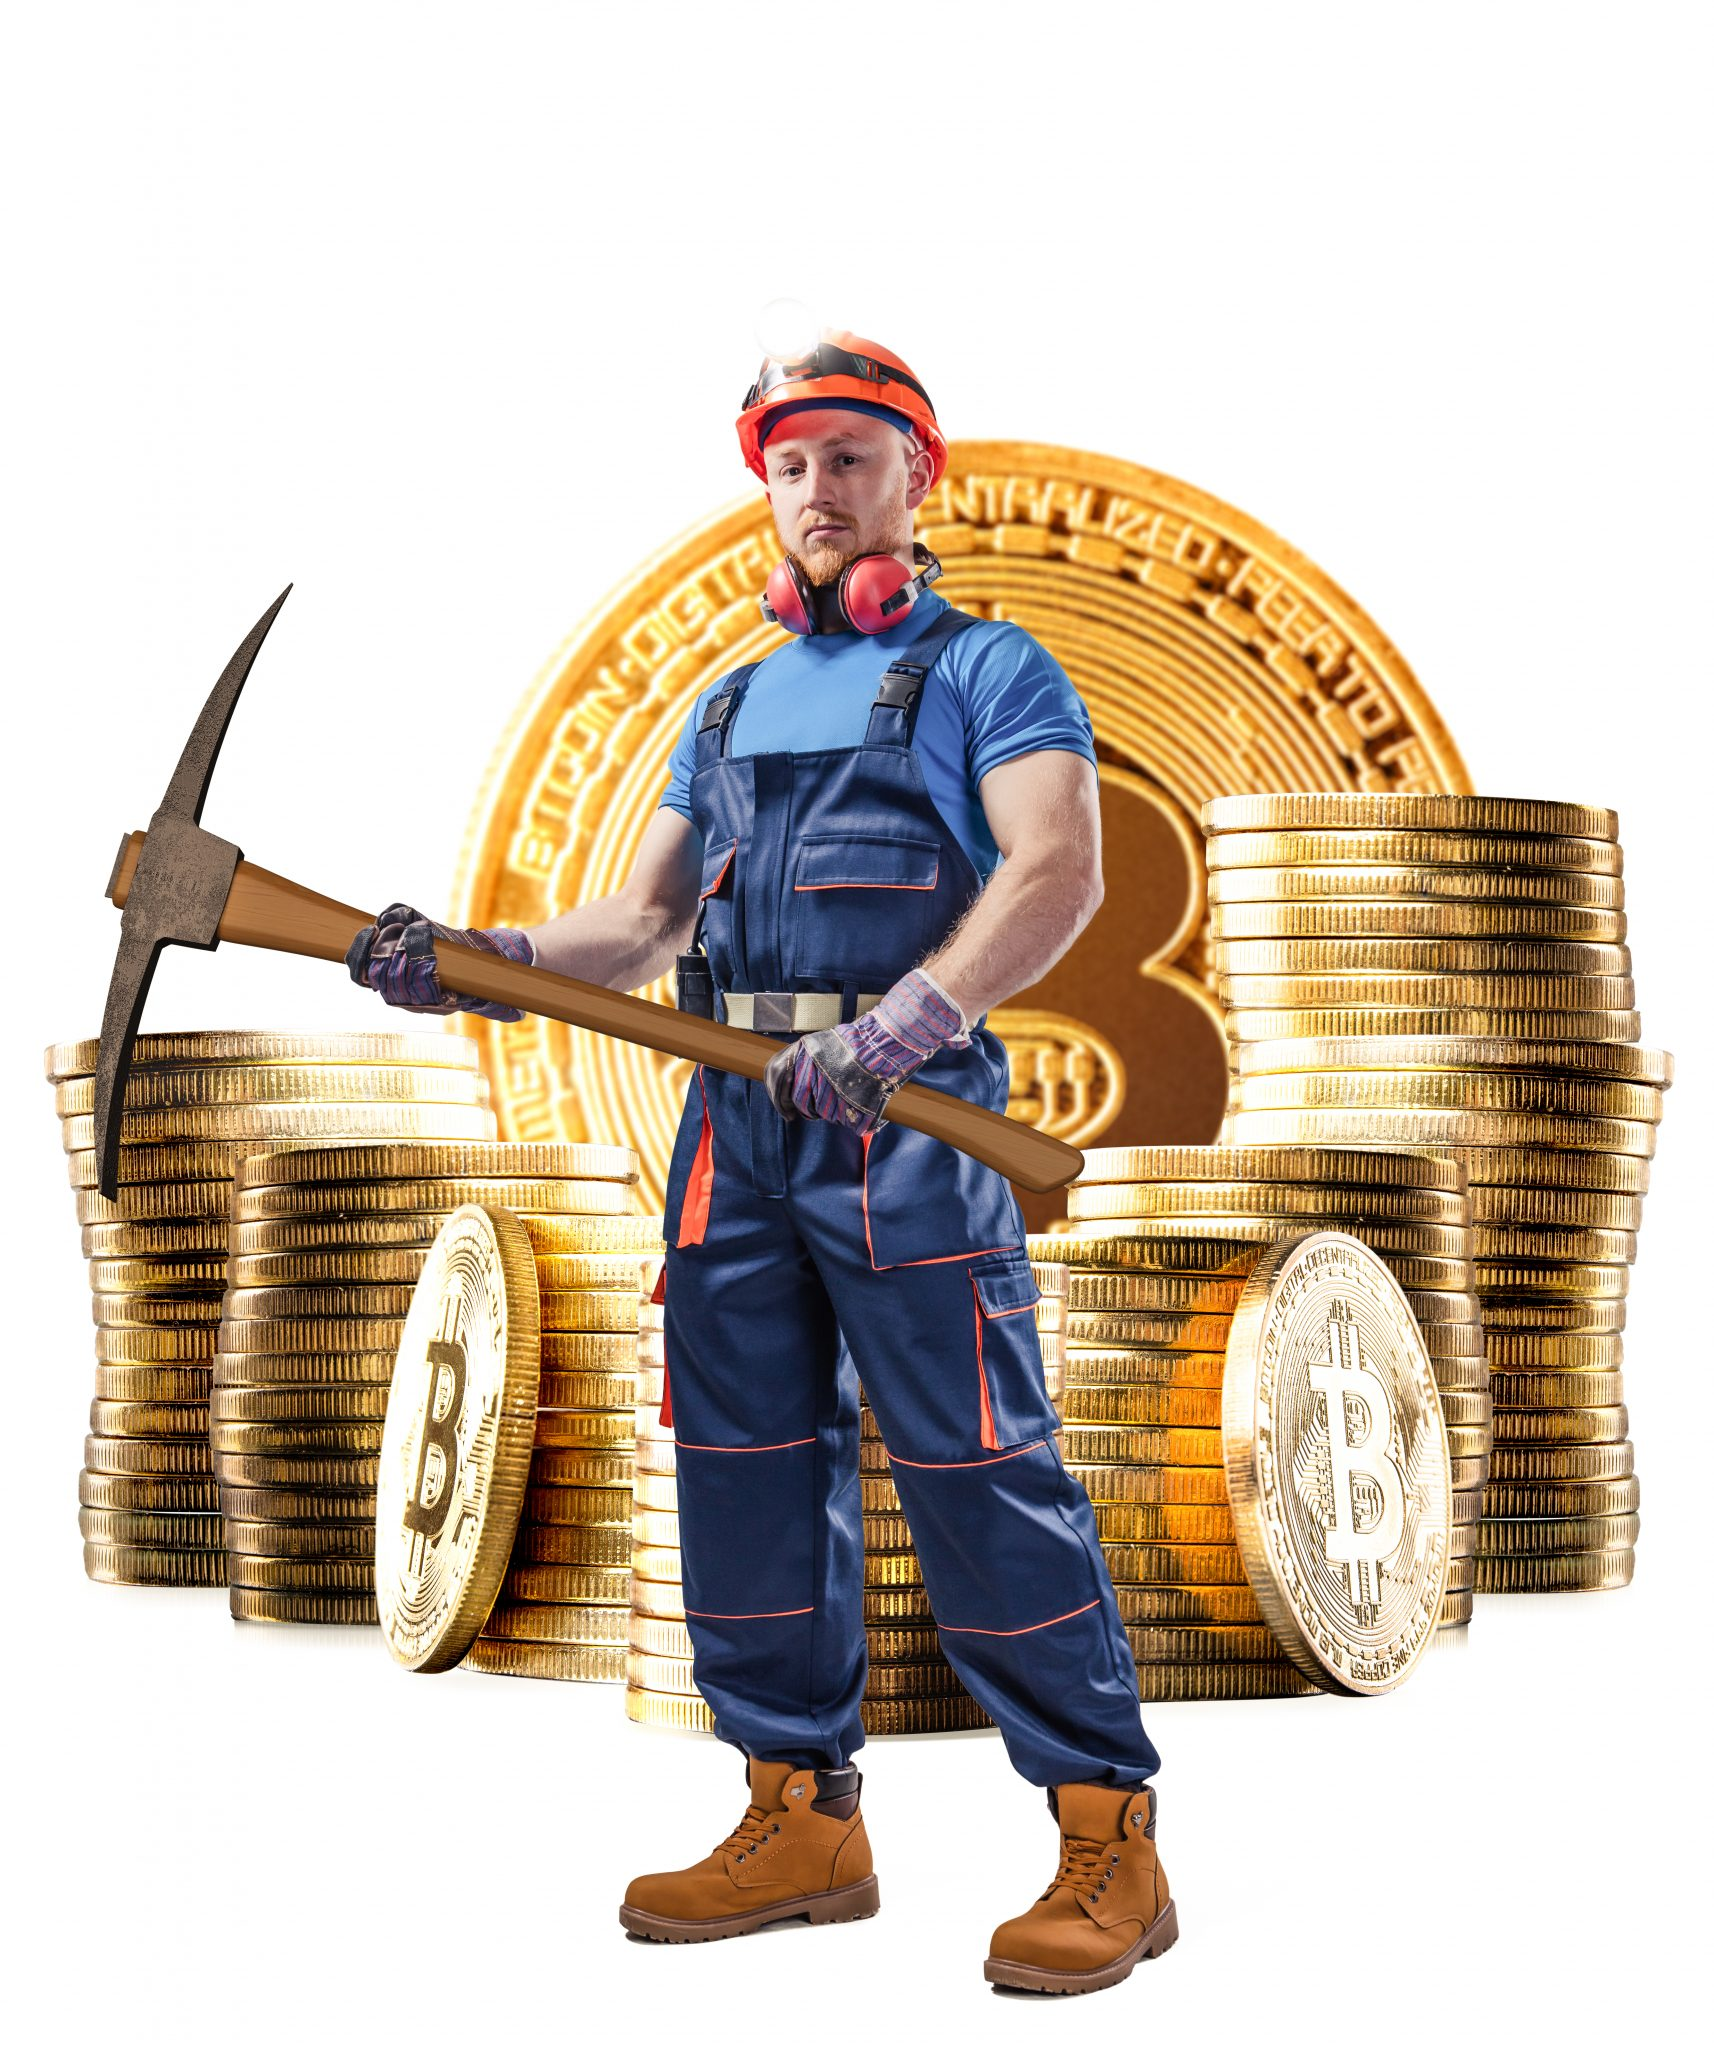 Macro view of miner. Devices and technology for mining cryptocurrency. Mining cryptocurrency concept.